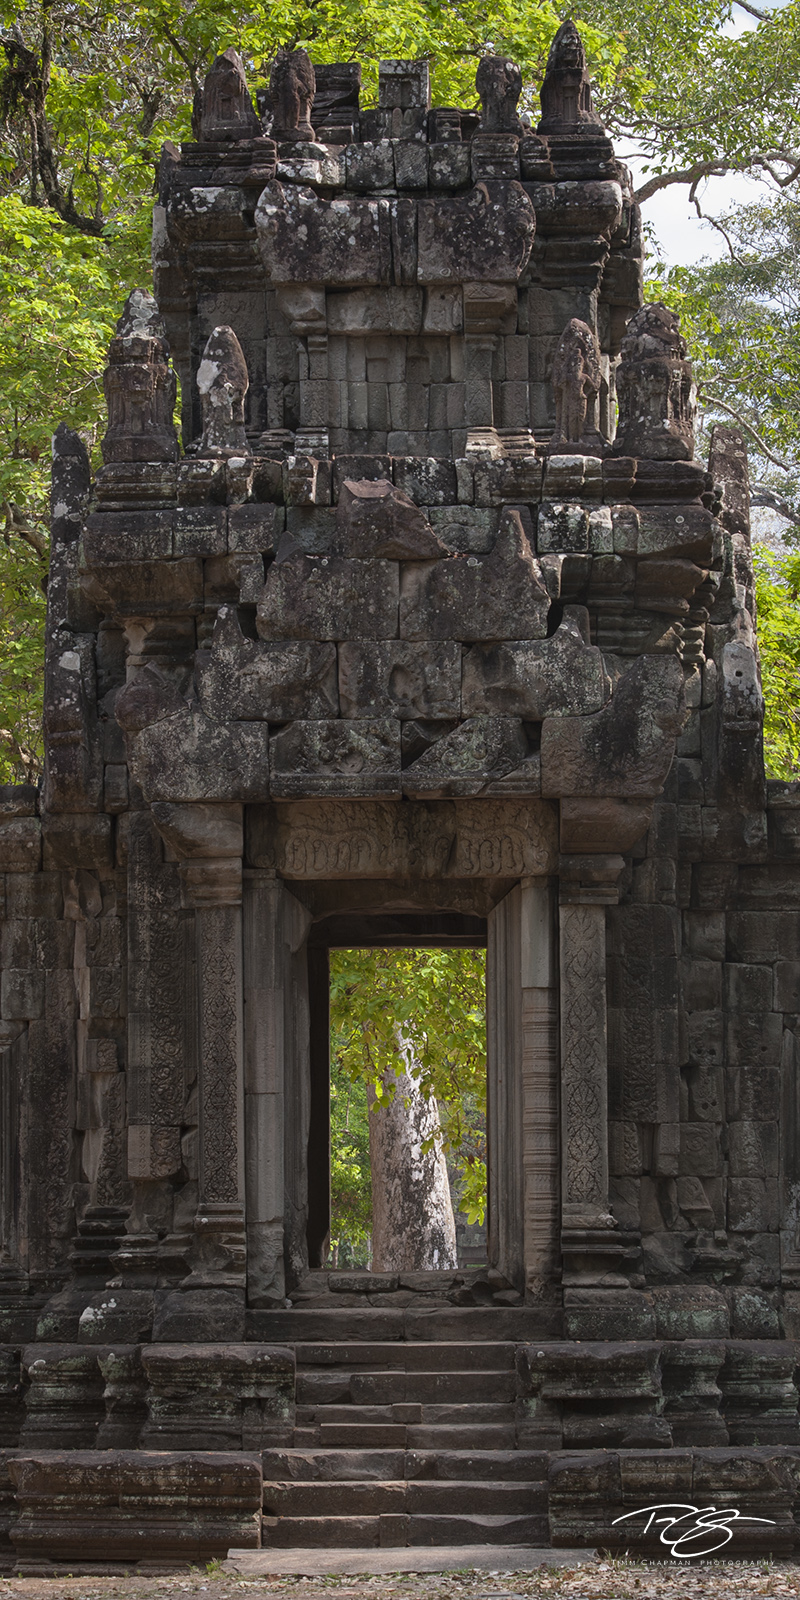 Climb the steps of this ancient temple and enter another dimension...